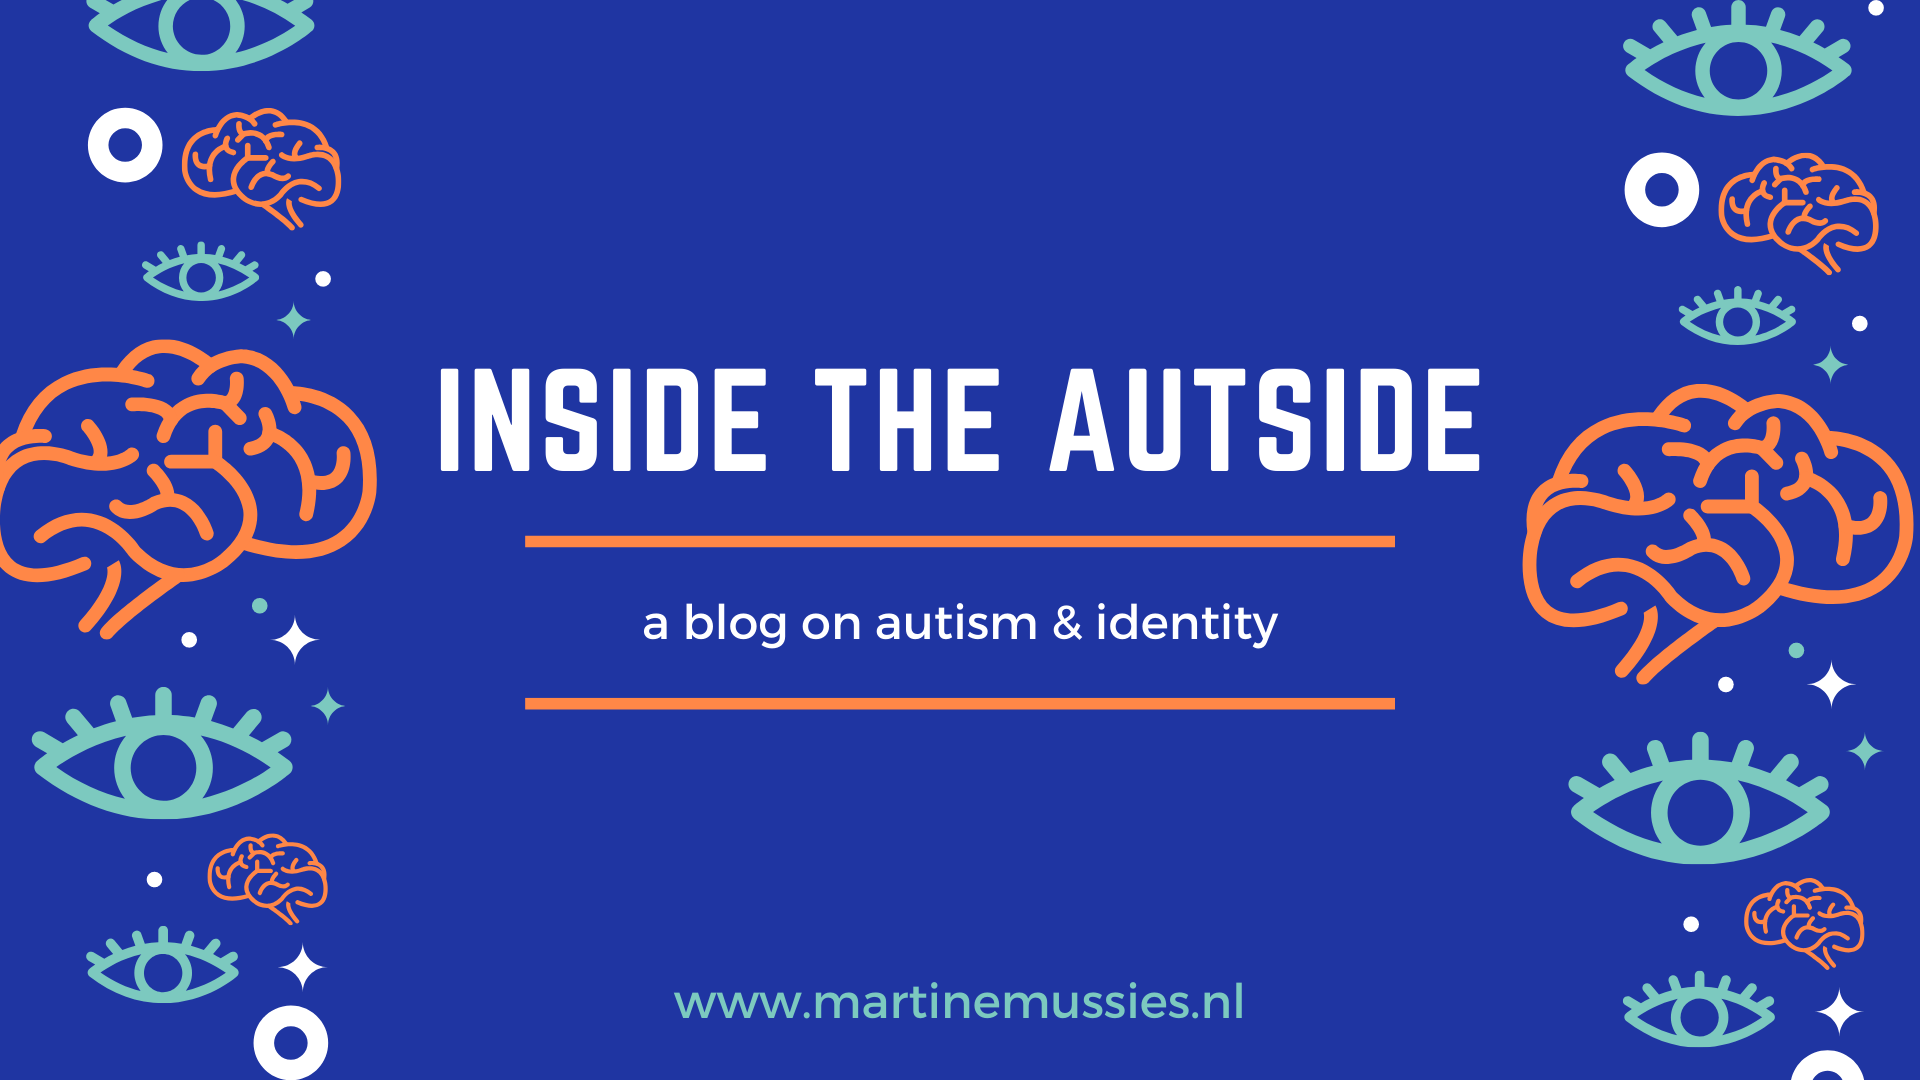 Inside the Autside – on autism & identity